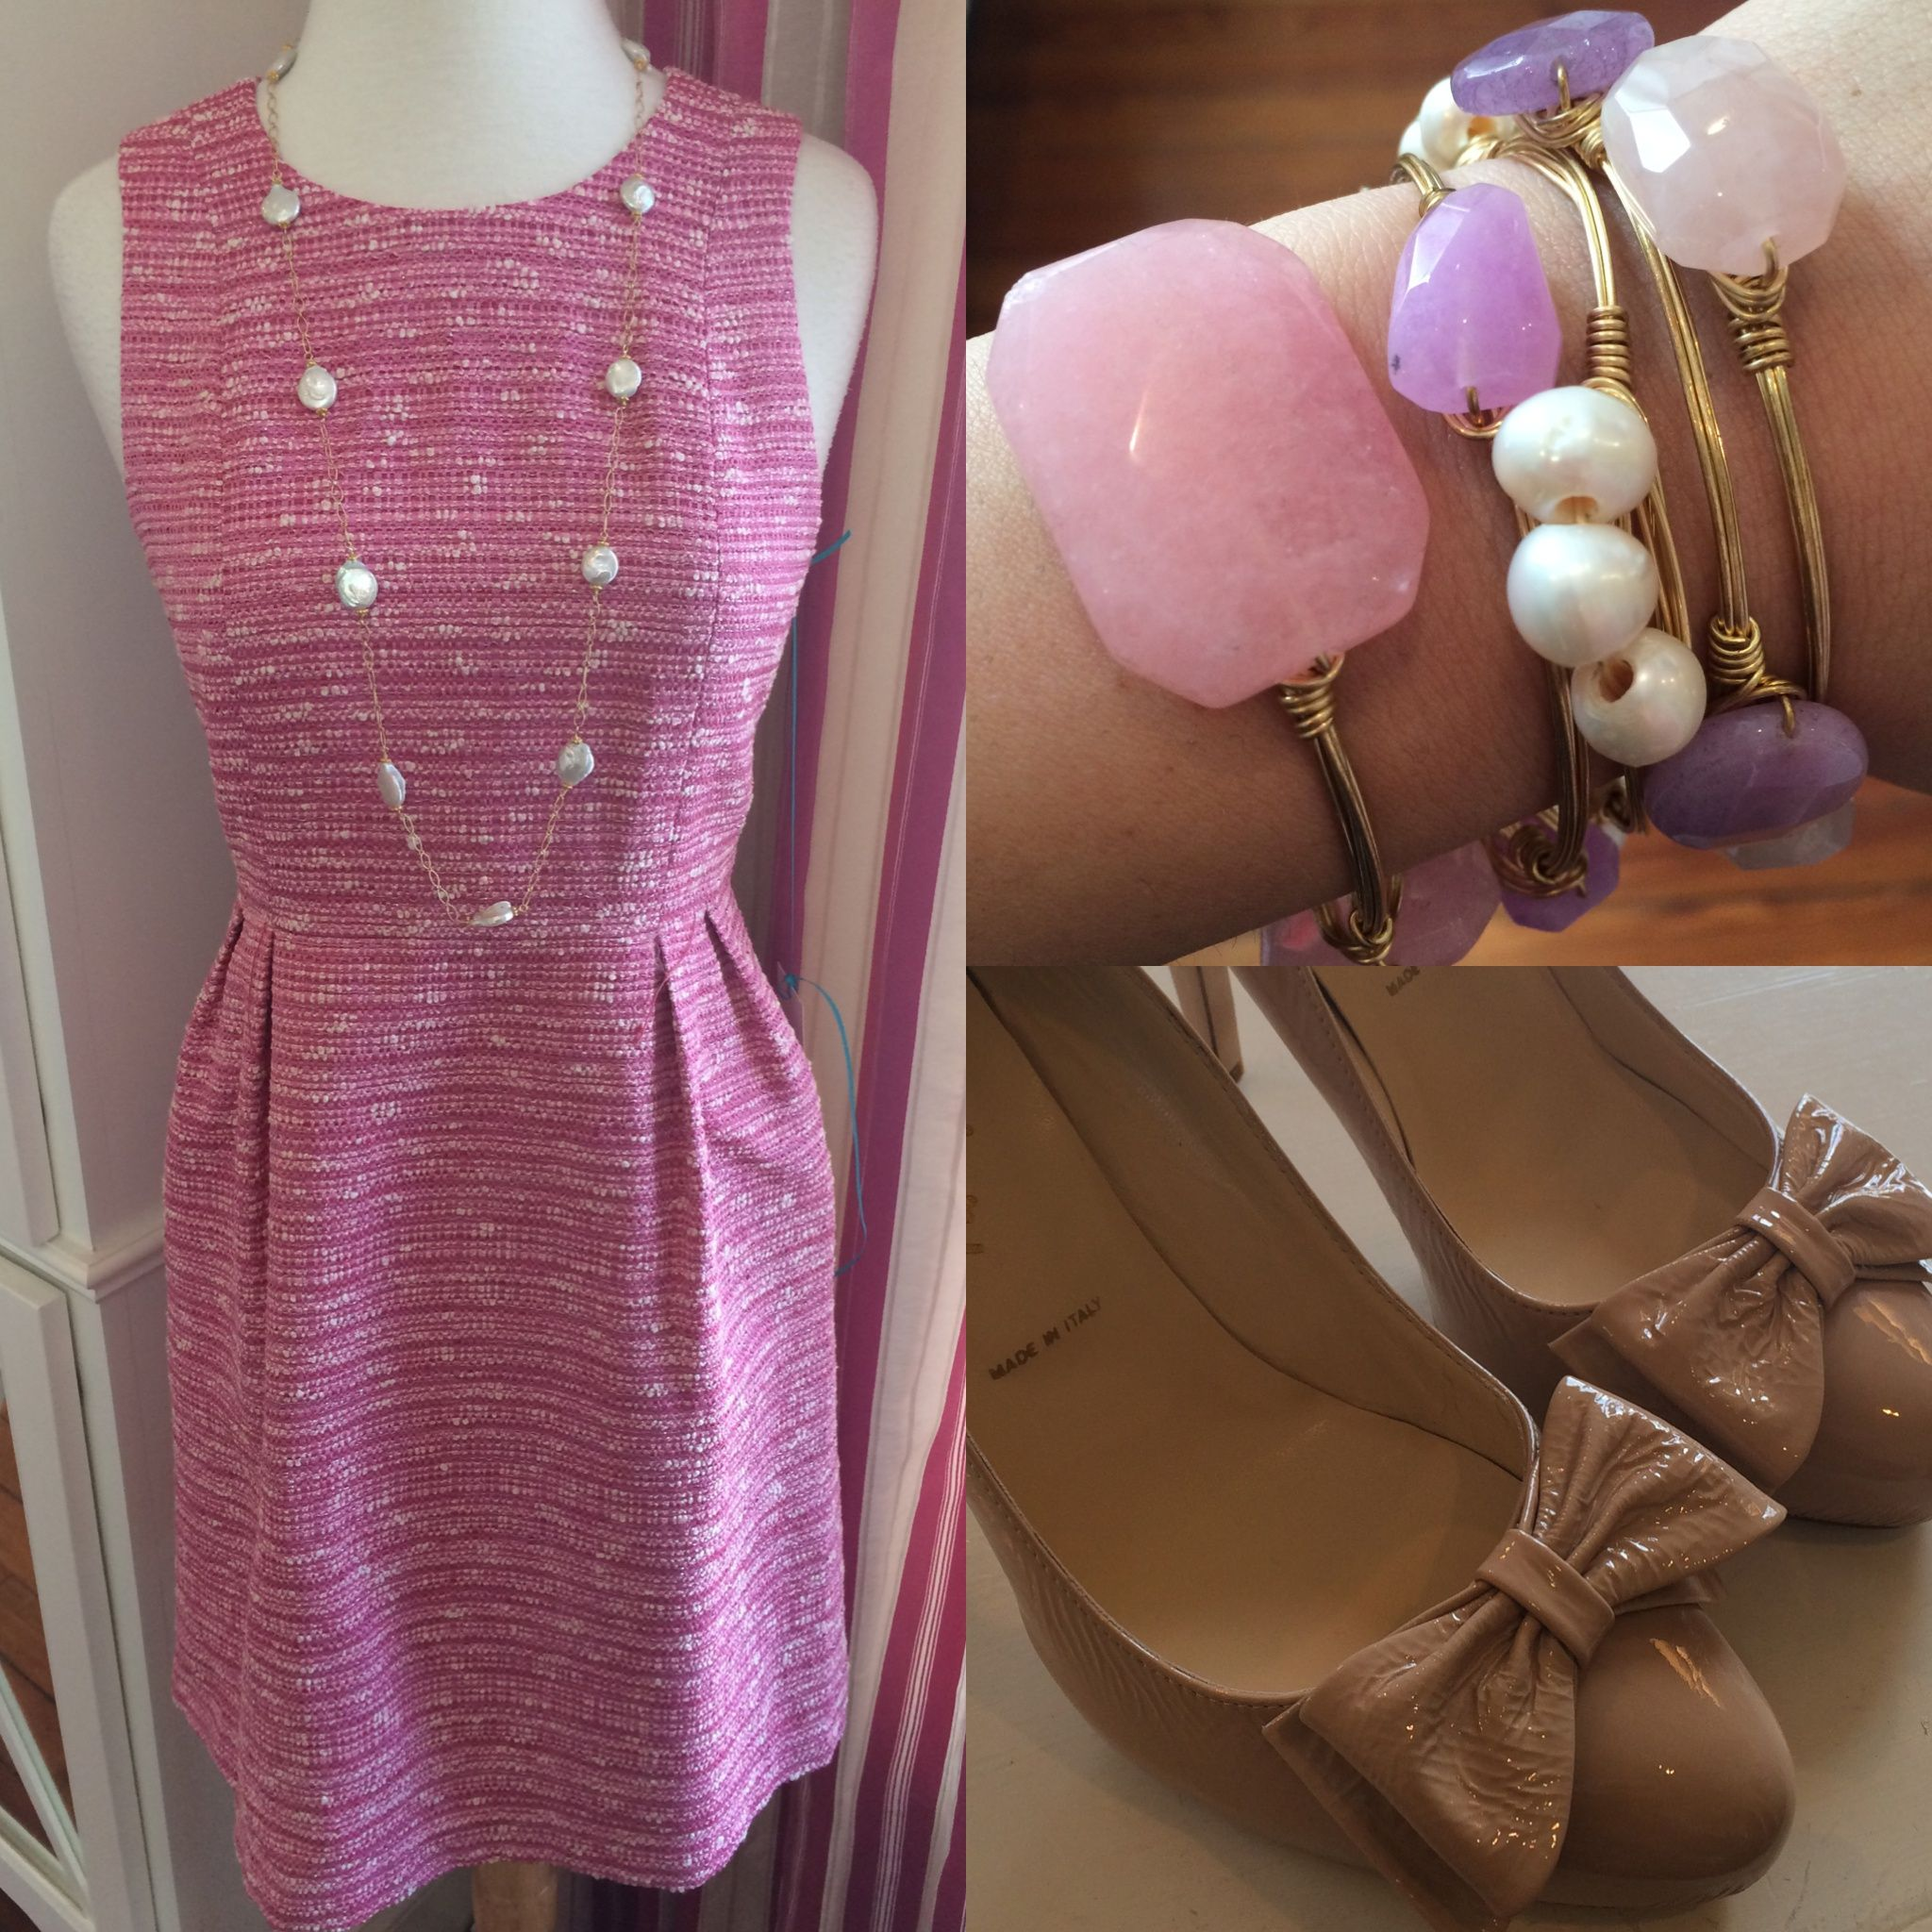 #ootd #Monkeesoflex #derby #keeneland #Easter #blitheny #bourbonandboweties #wandm #butter #shopmonkees